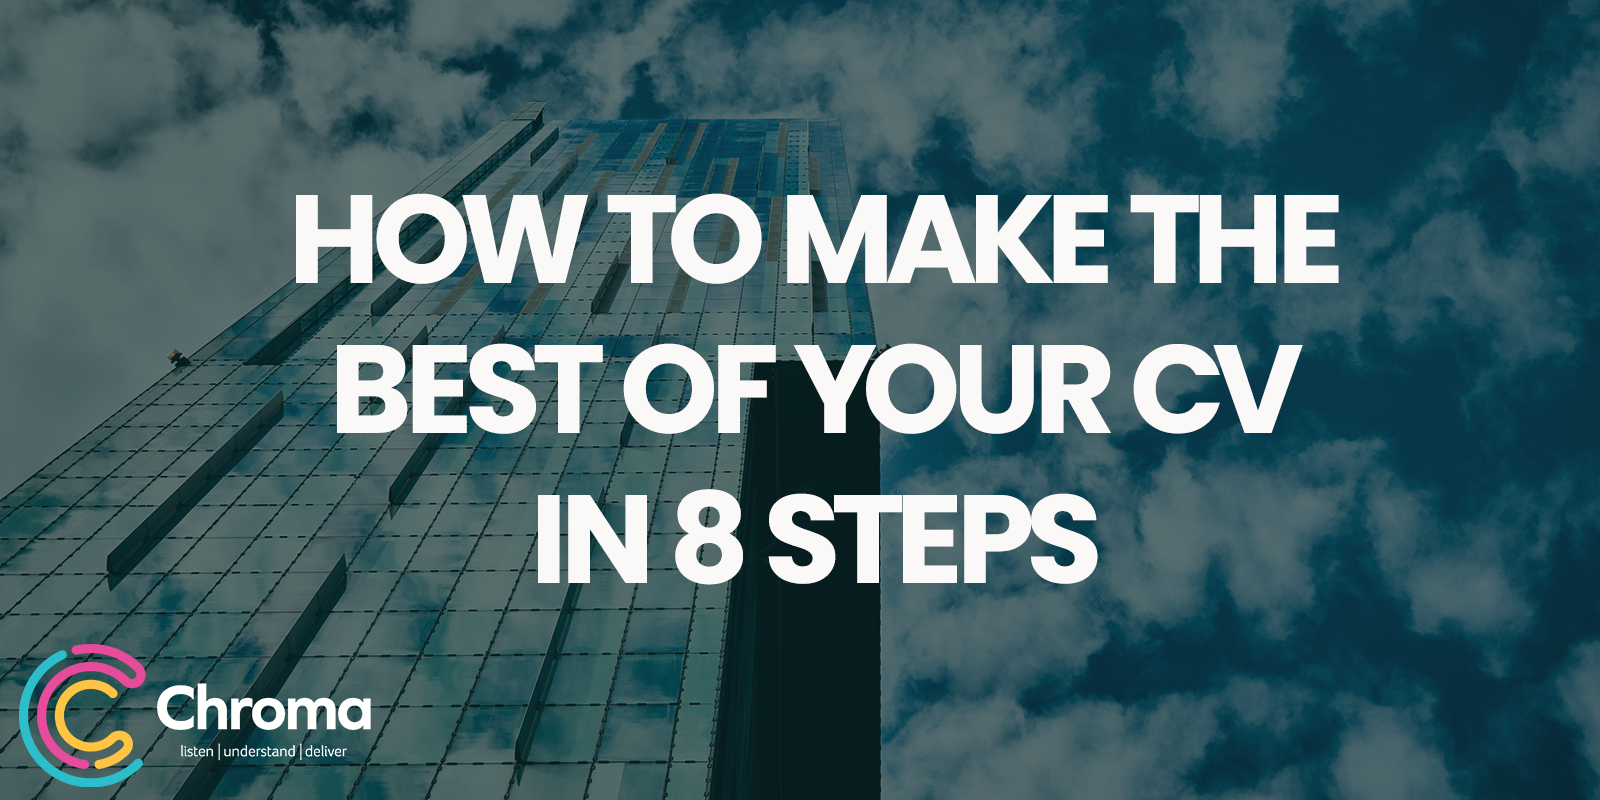 How to make the best of your CV in 8 steps